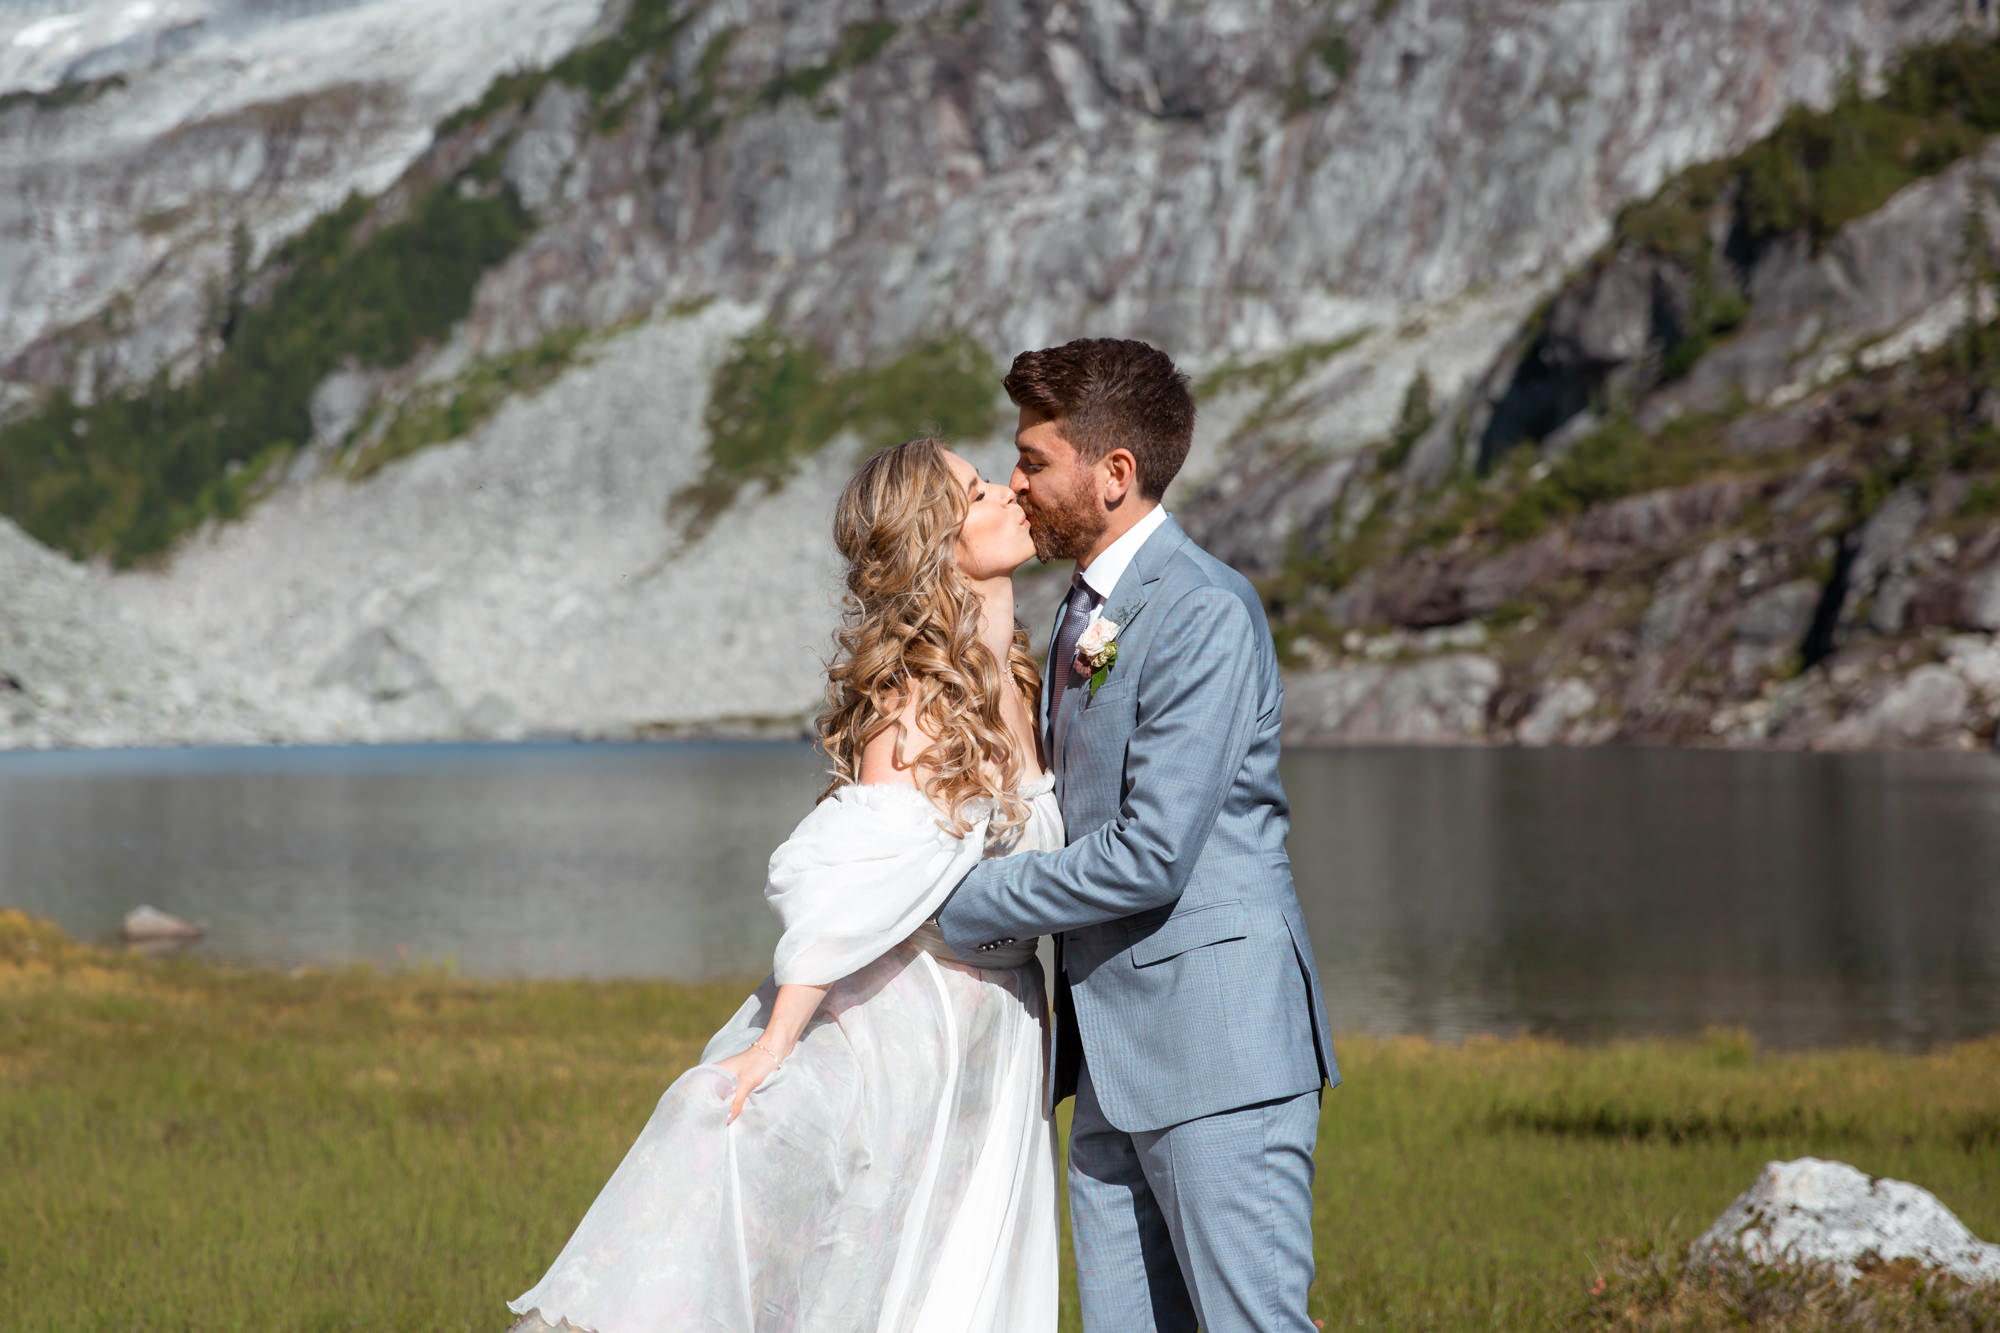 Couple kissing during their wedding photo session by the alpine lake